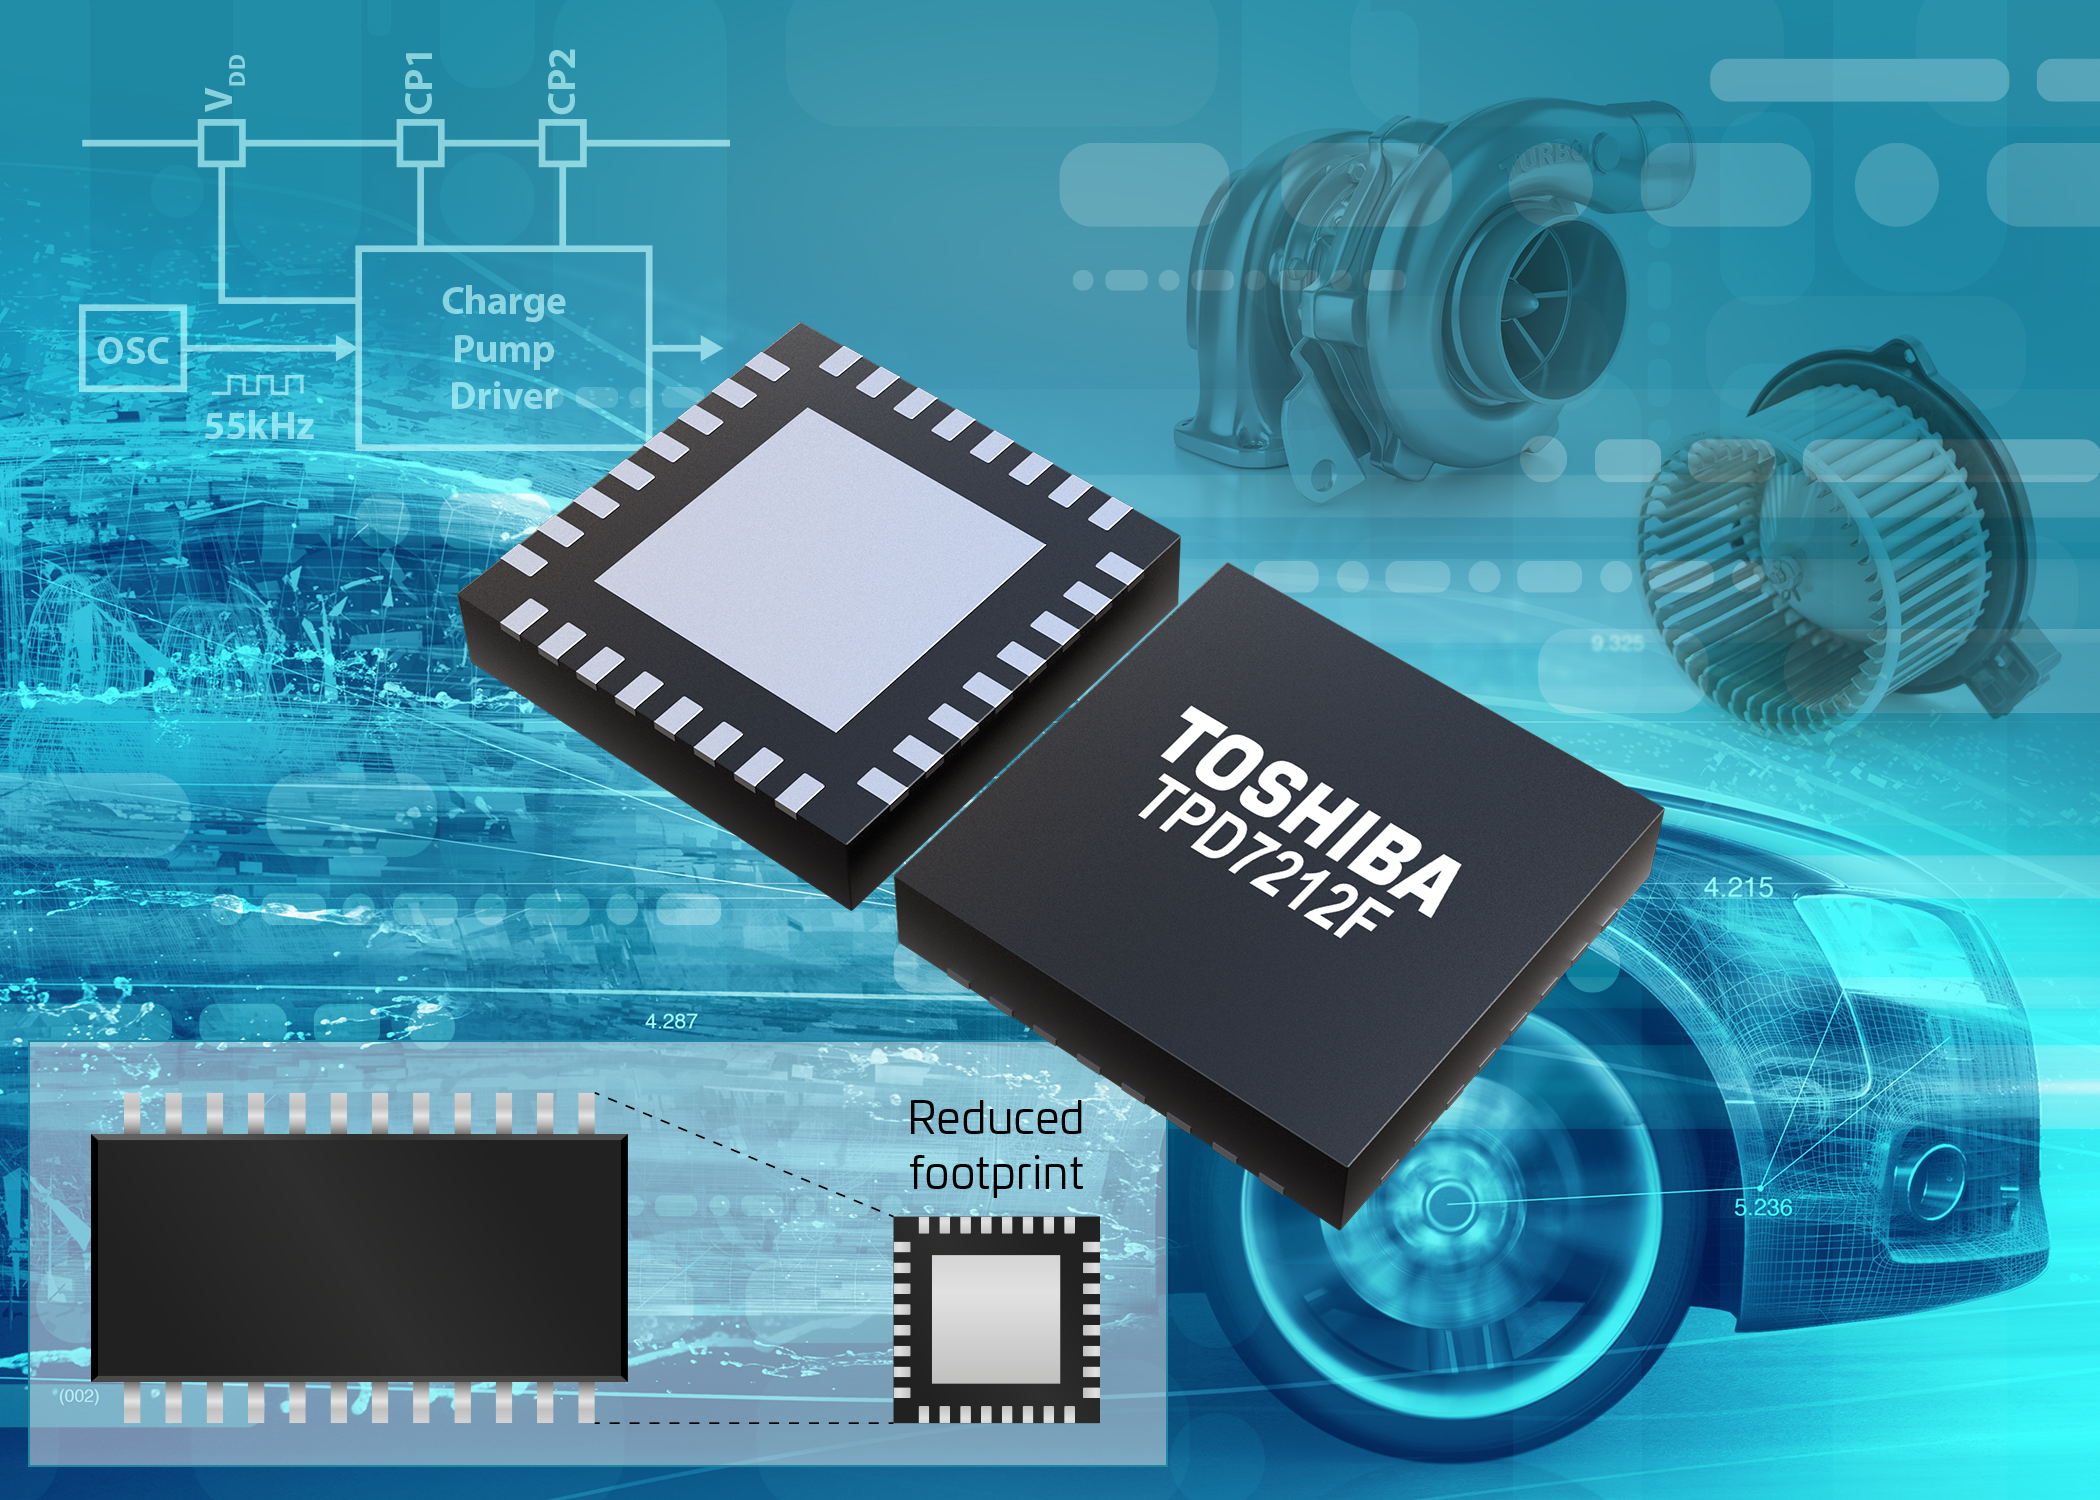 Compact Power Mosfet Gate Driver Intelligent Device How To Protect Devices